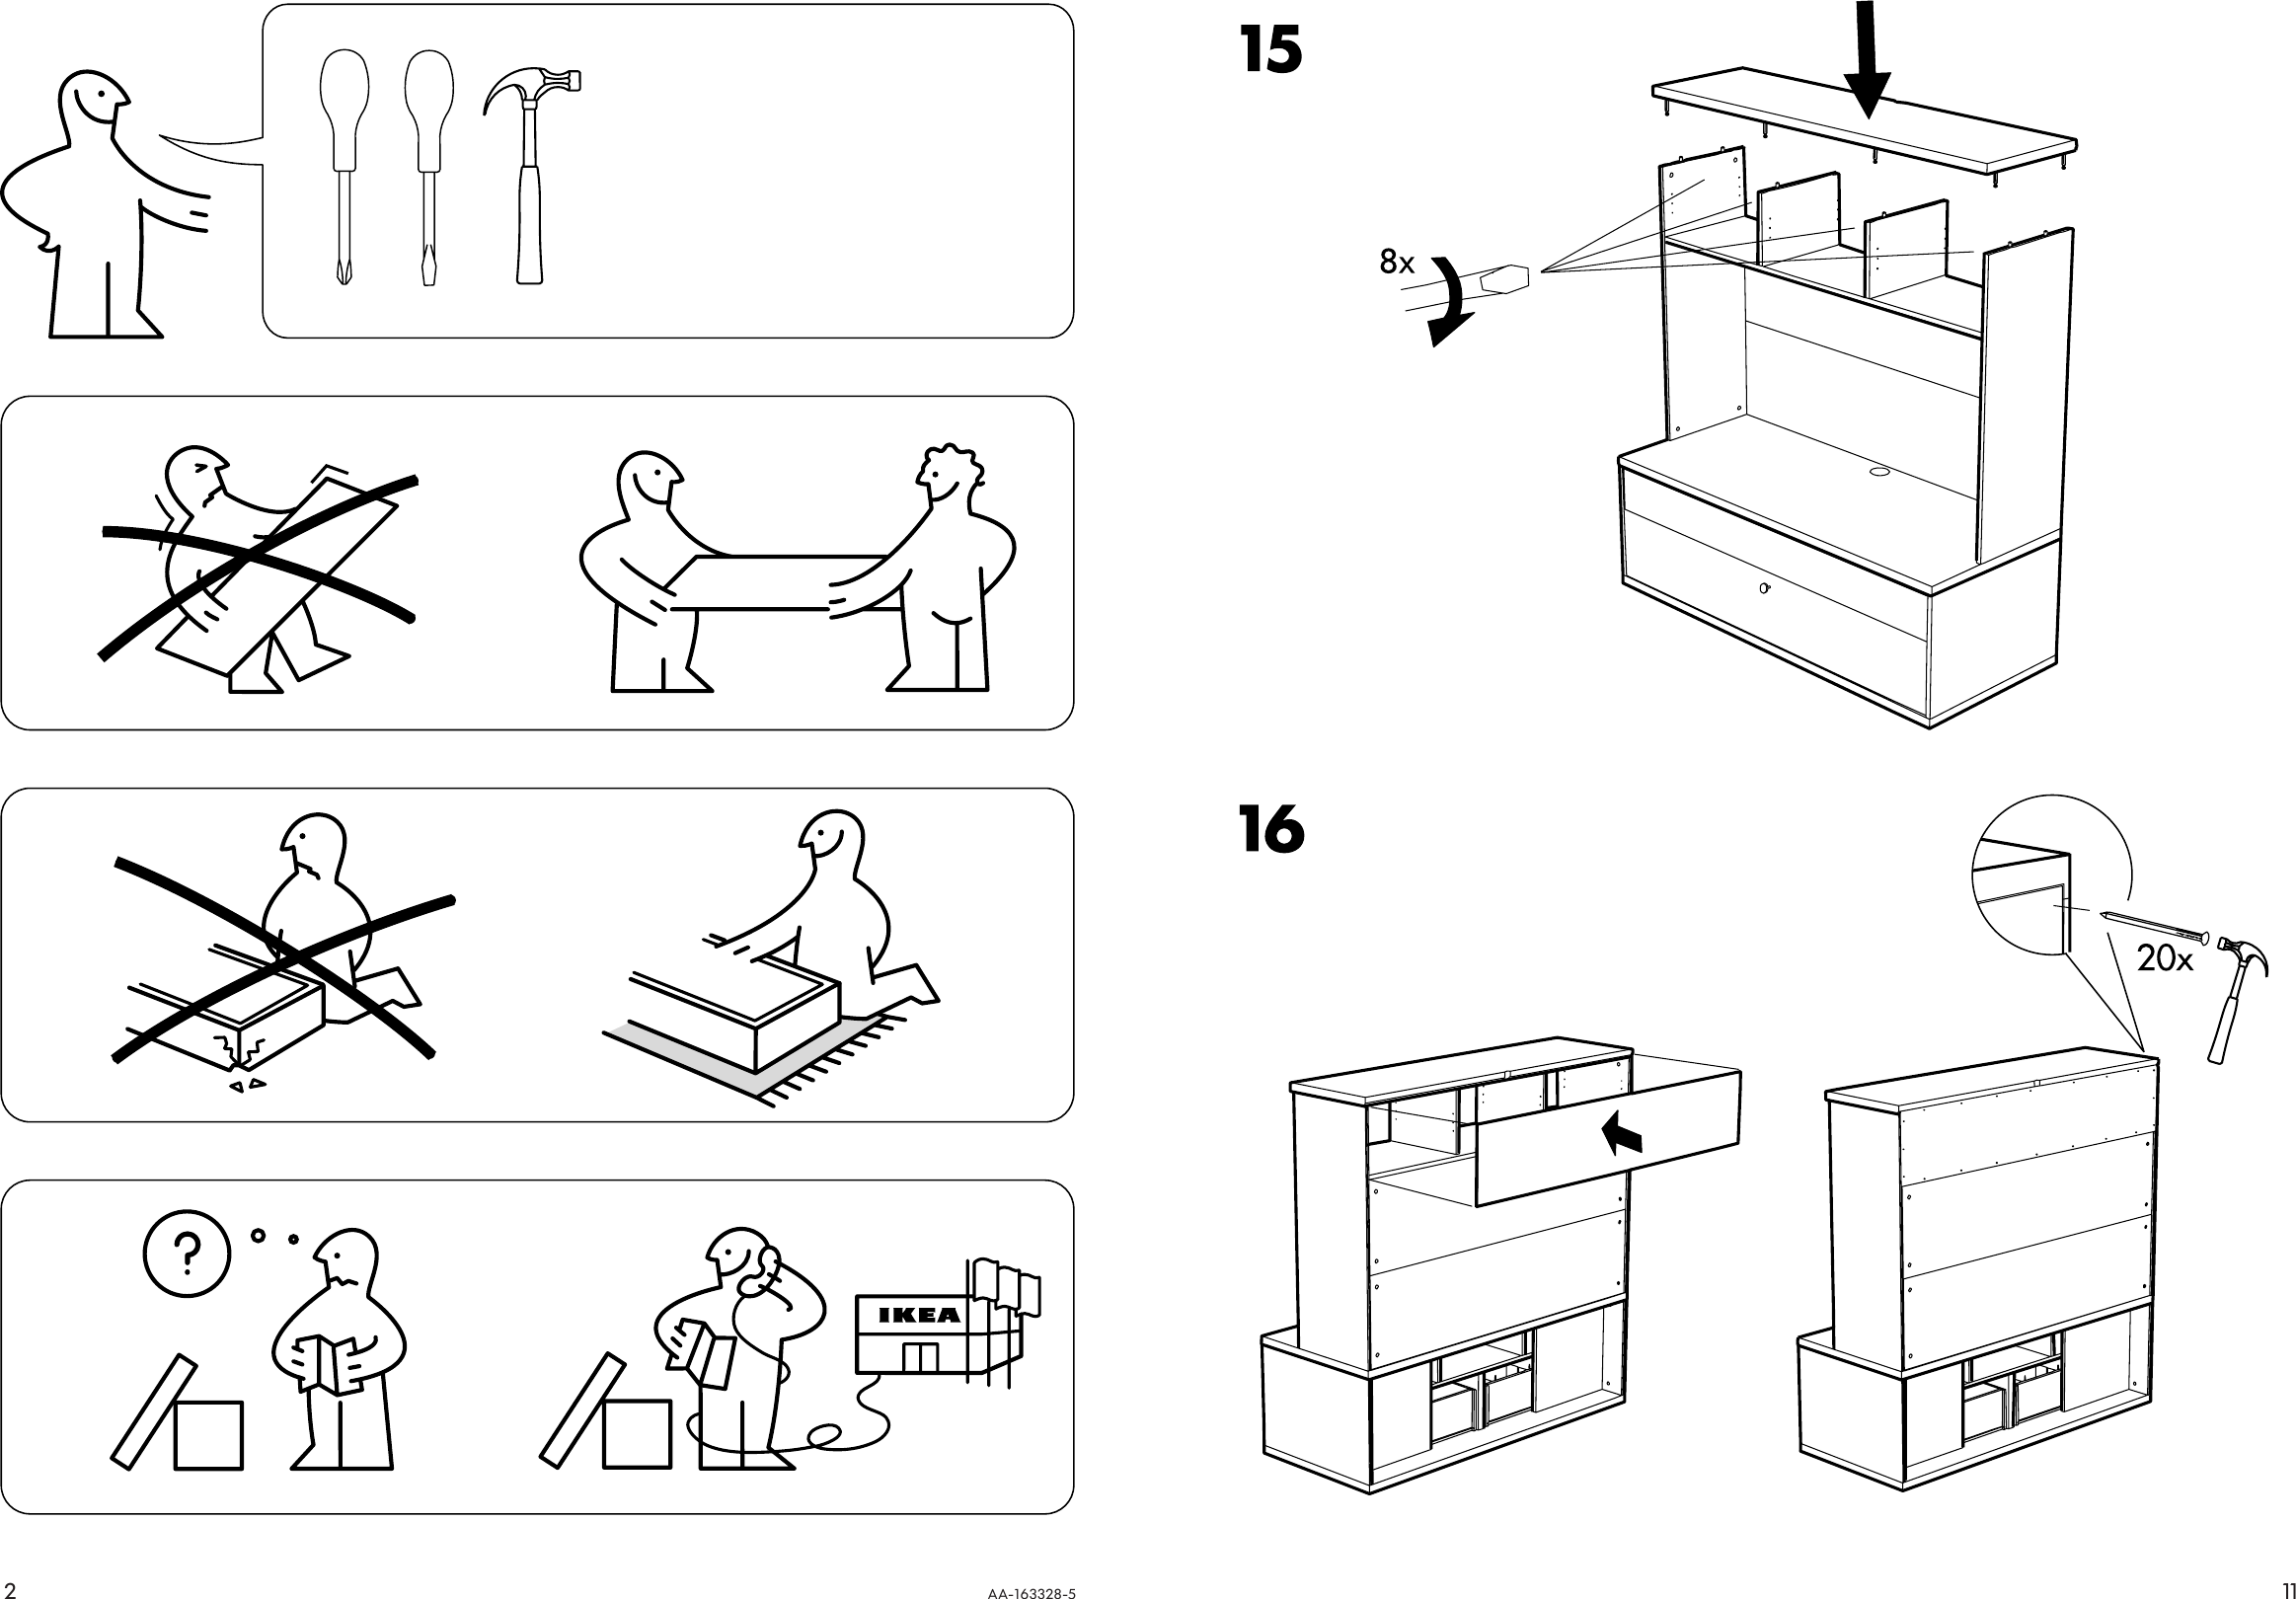 Page 2 of 6 - Ikea Ikea-Bonde-Add-On-For-Tv-Unit-57X40-Assembly-Instruction-3  Ikea-bonde-add-on-for-tv-unit-57x40-assembly-instruction